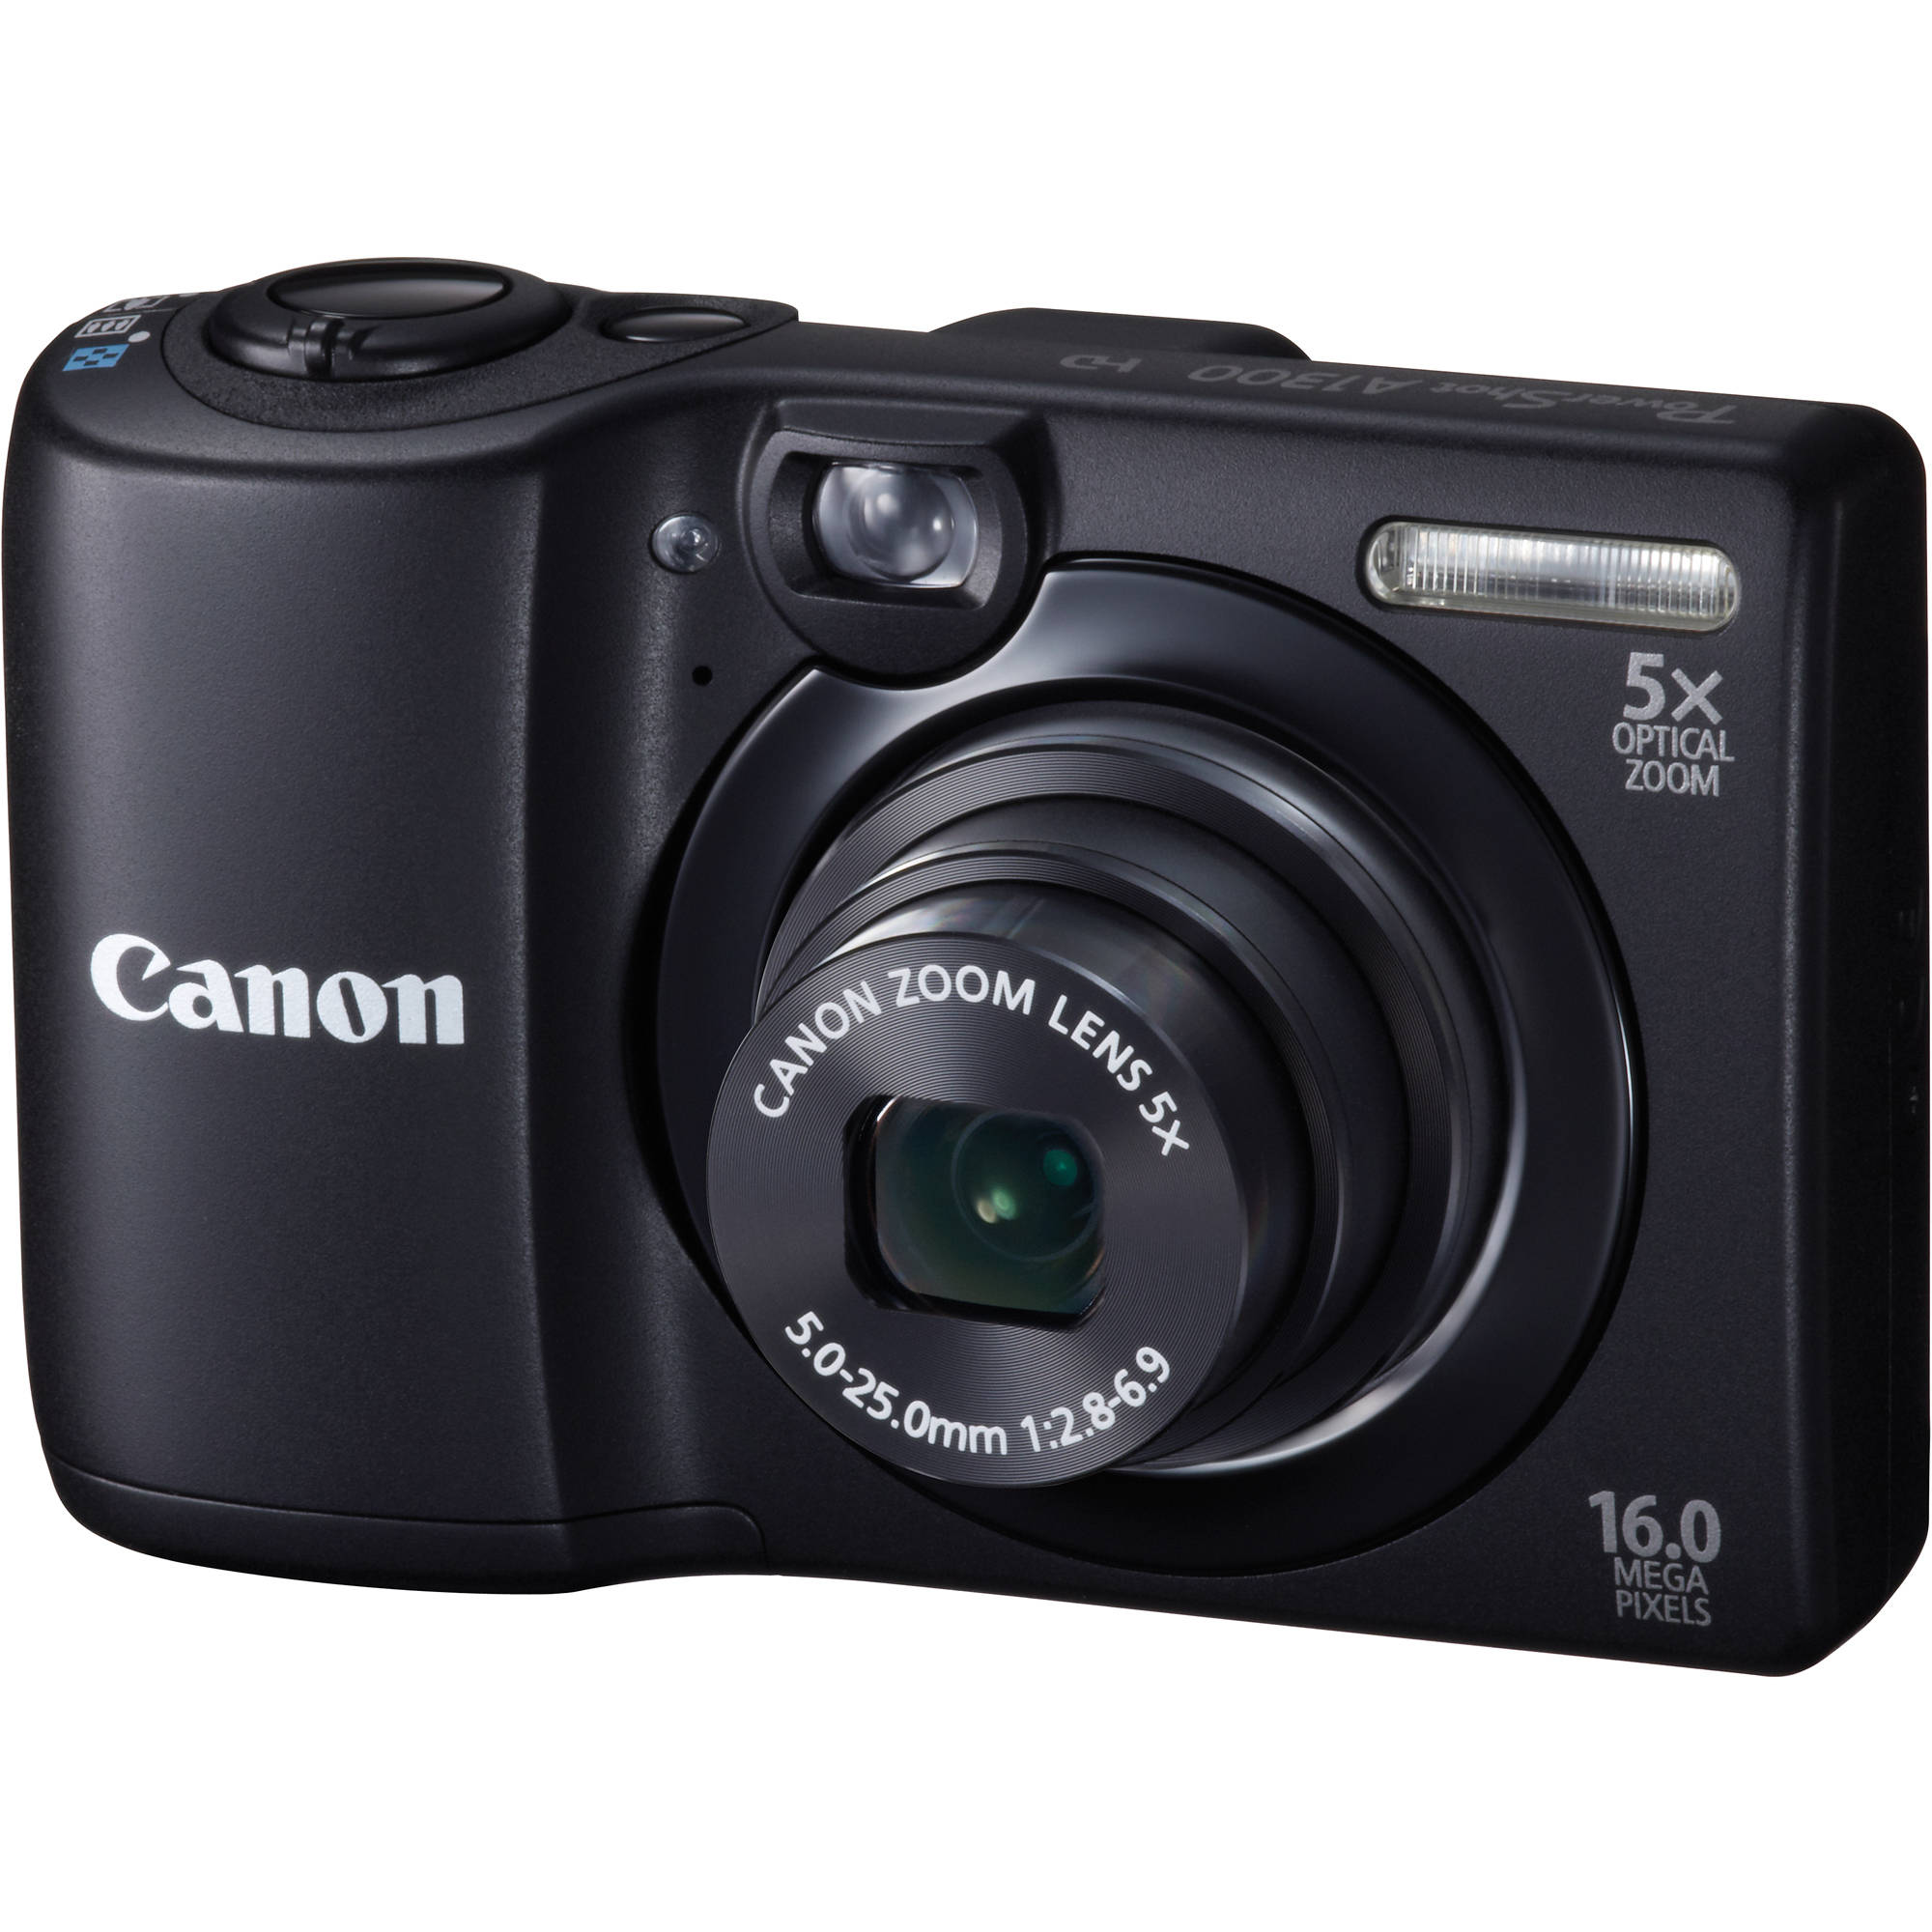 canon powershot a1300 digital camera black 6178b001 b h photo rh bhphotovideo com Review Canon PowerShot A1300 Underwater Case for Canon A1300